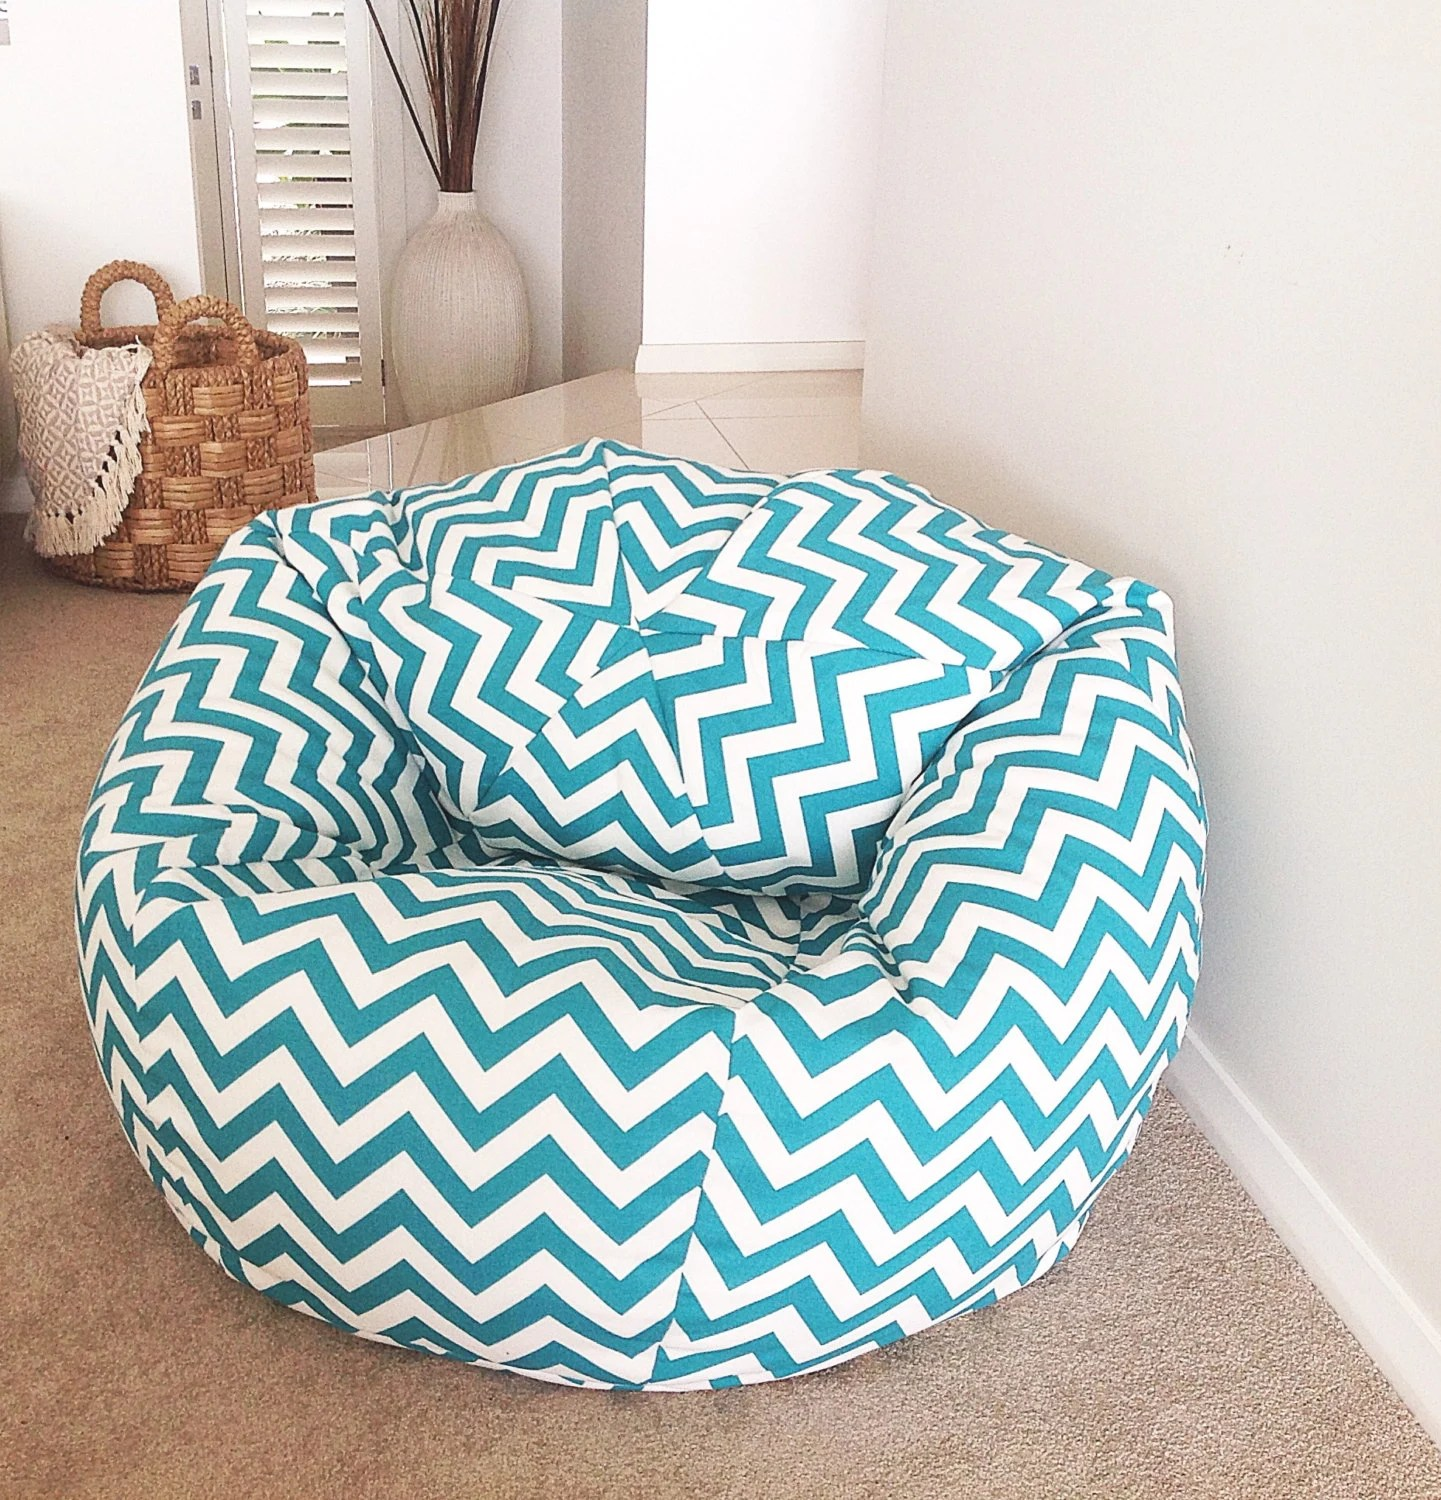 bean bag chairs for teens fake wood adirondack chevron cover adults kids turquoise zig